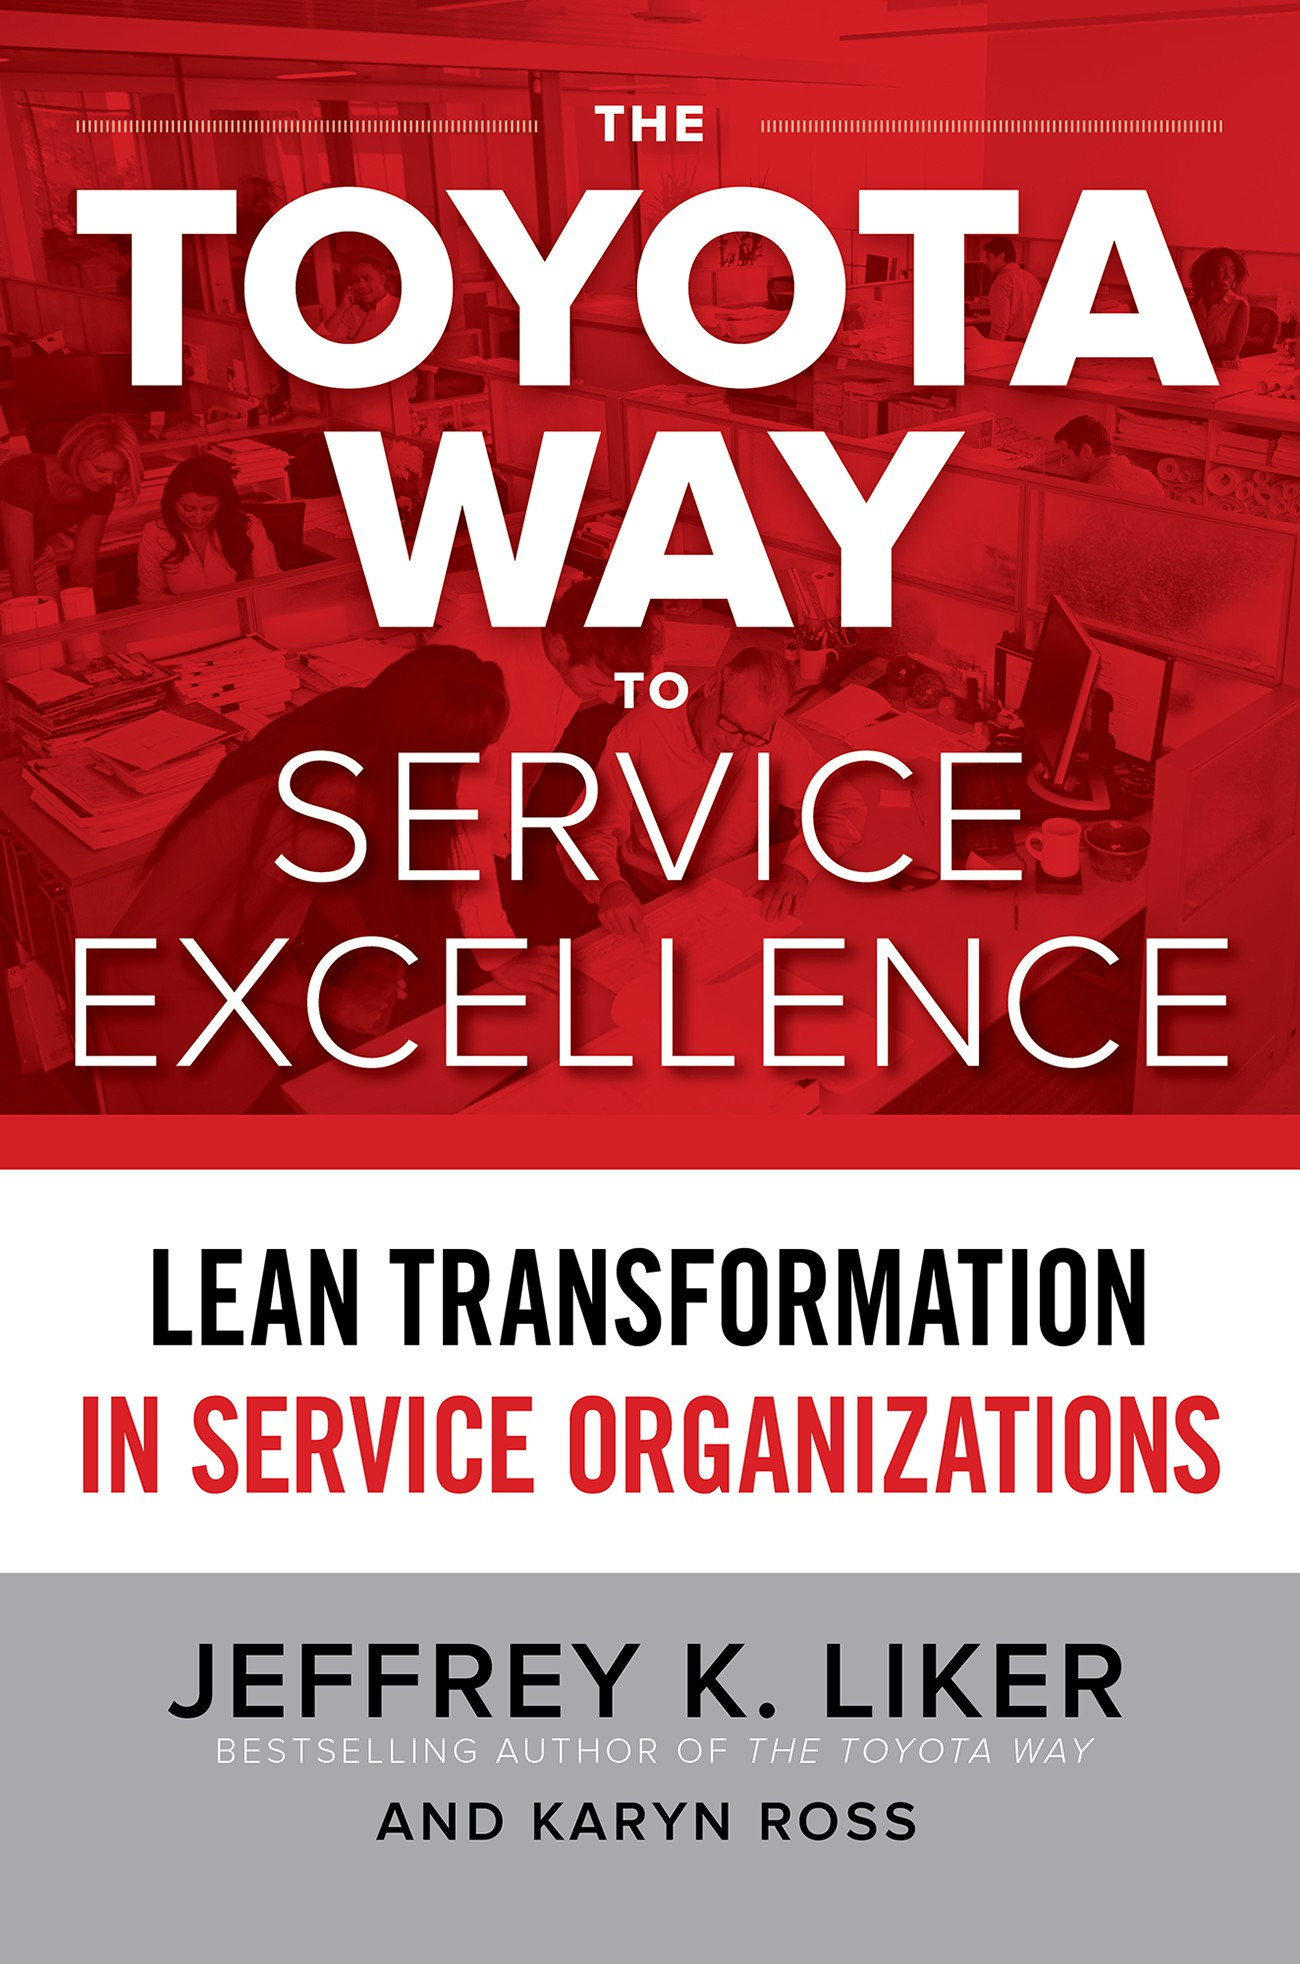 Download Ebook The Toyota Way to Service Excellence: Lean Transformation in Service Organizations by Jeffrey K. Liker Pdf